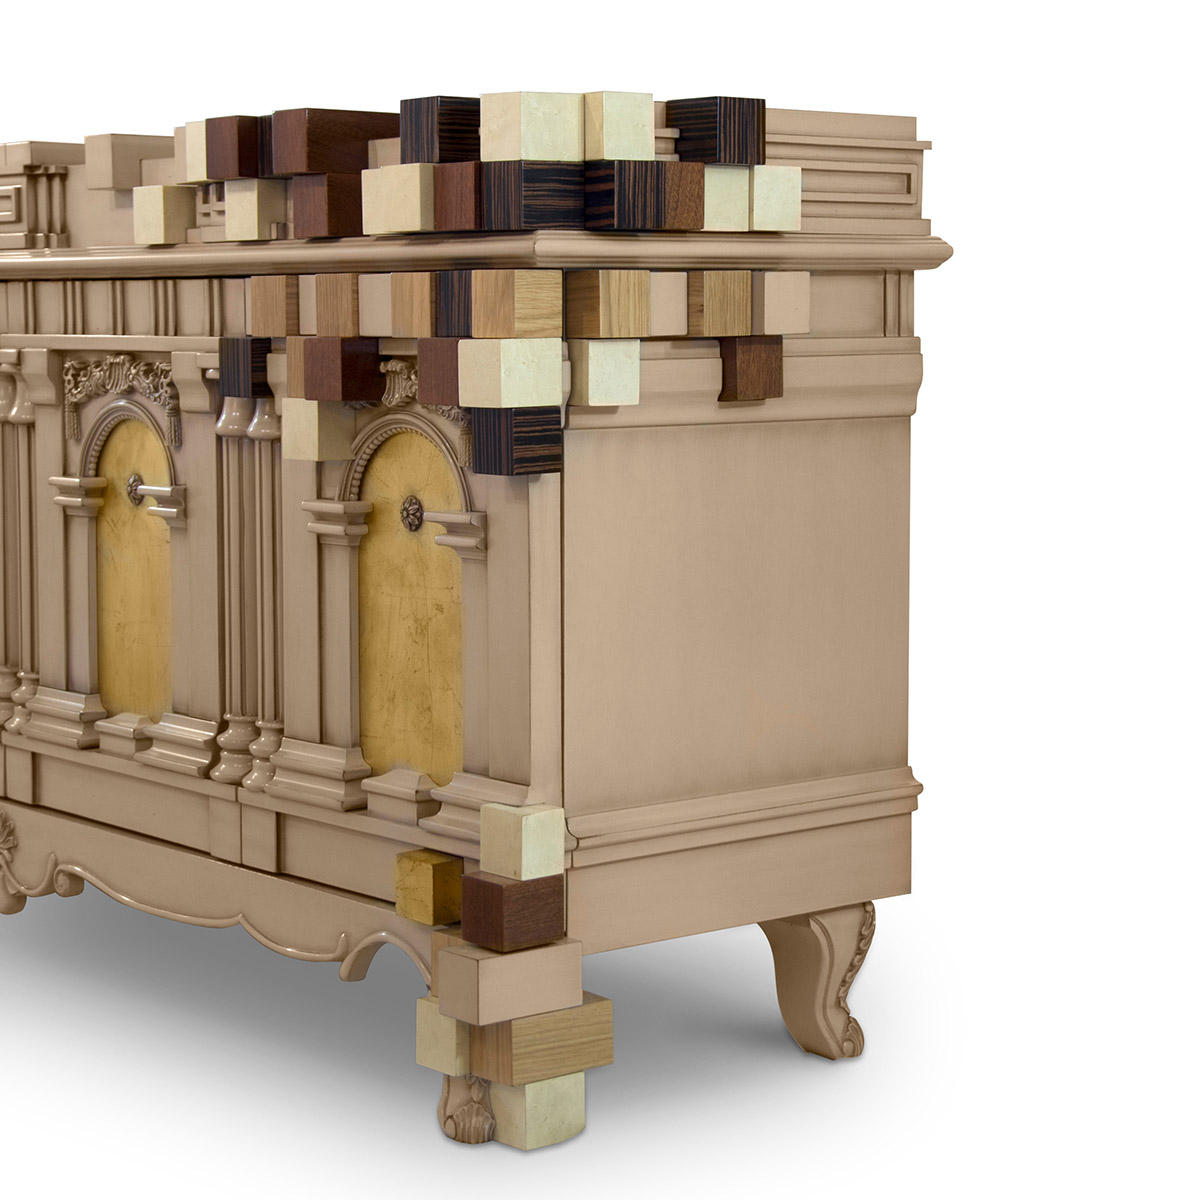 Design And Craftsmanship: How To Design The Perfect Sideboard